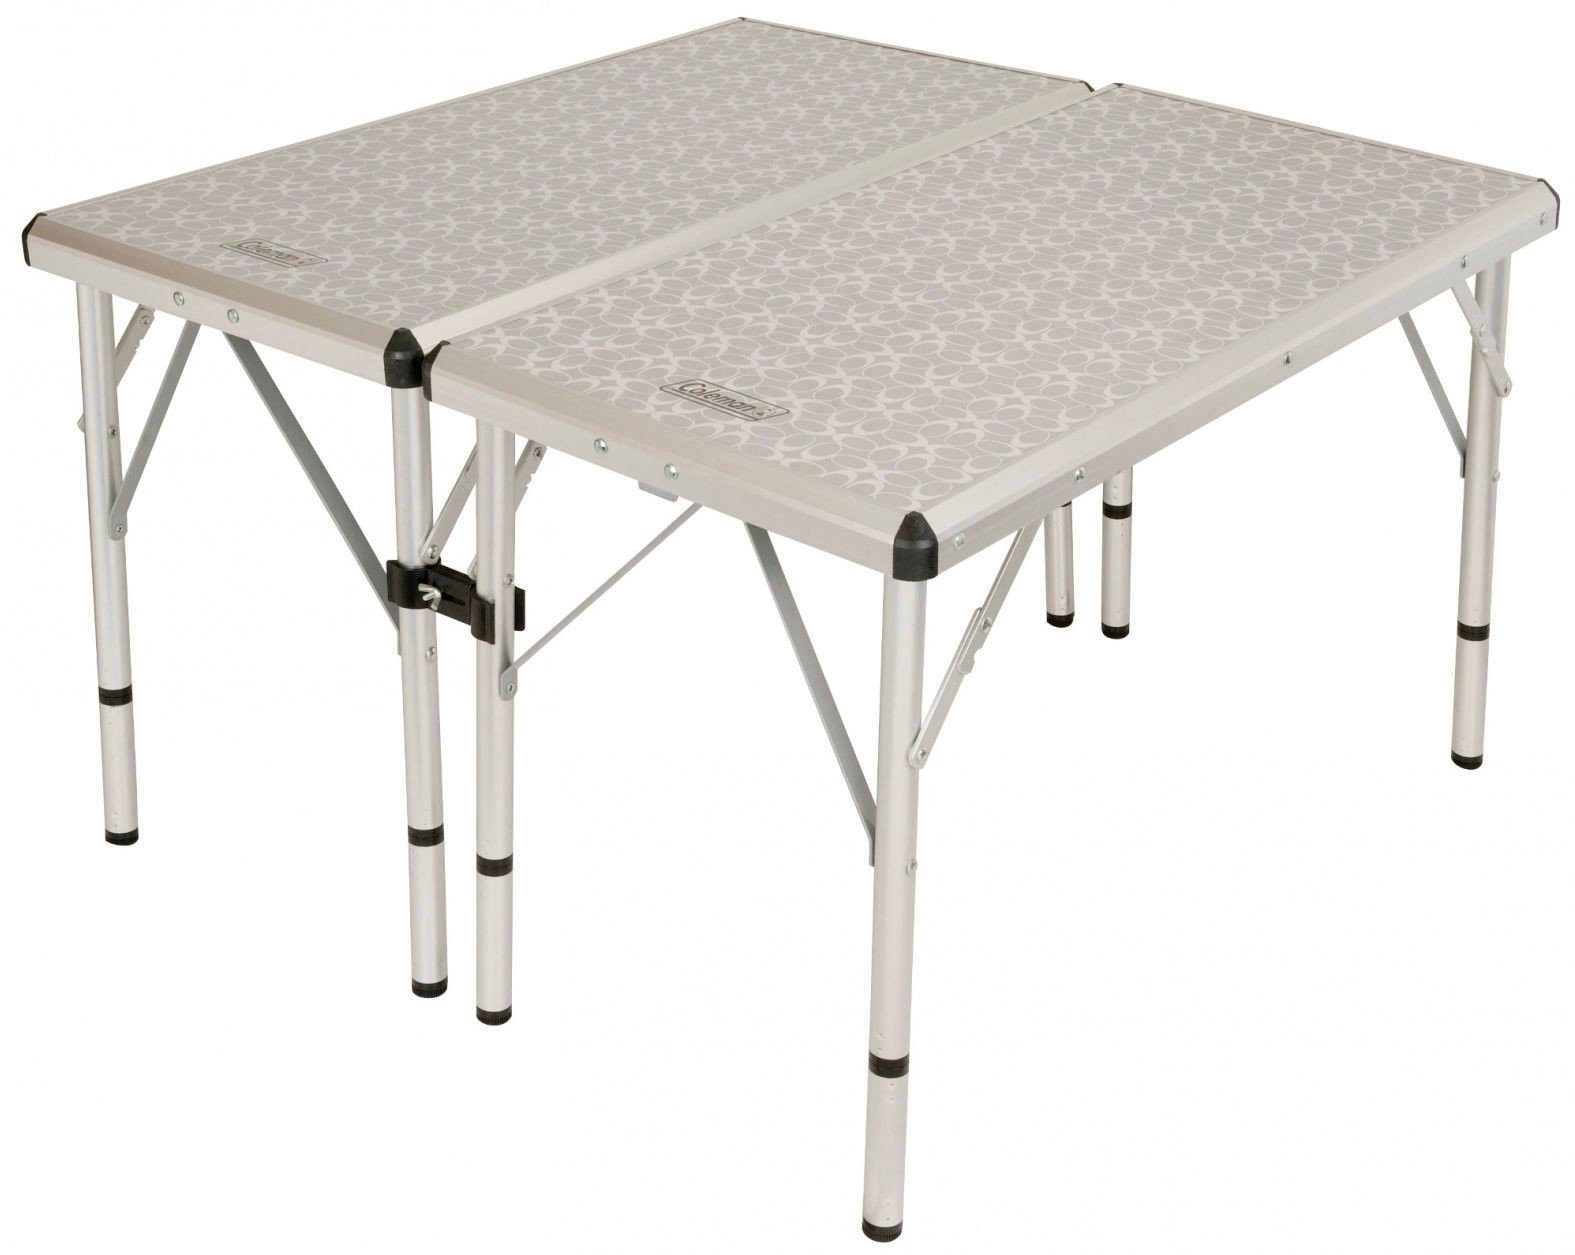 COLEMAN Camping Tisch »6 in 1 Camping Table«